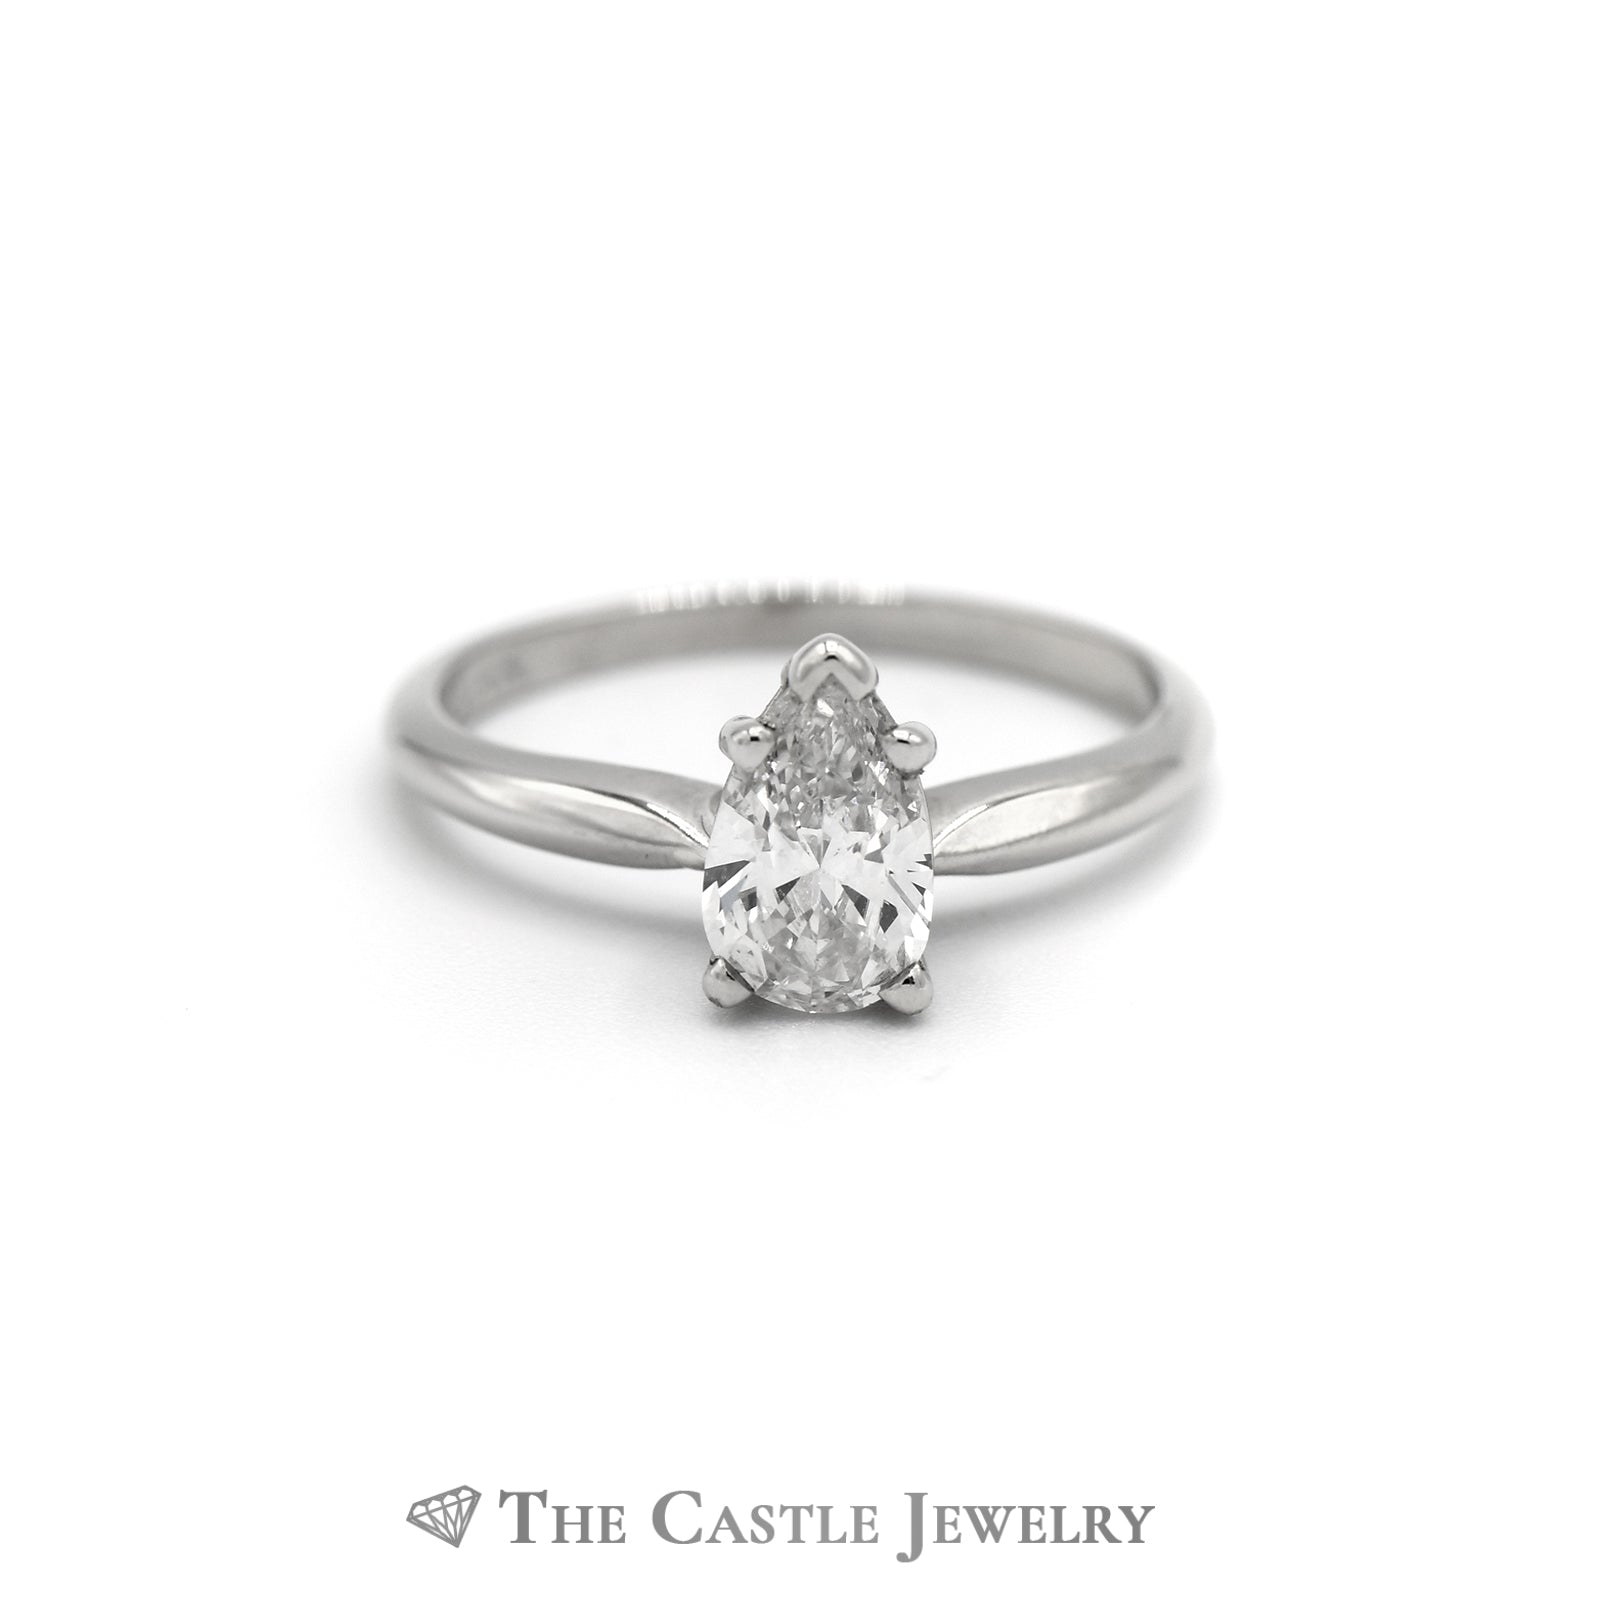 Pear Cut Diamond Solitaire Engagement Ring in 14K White Gold